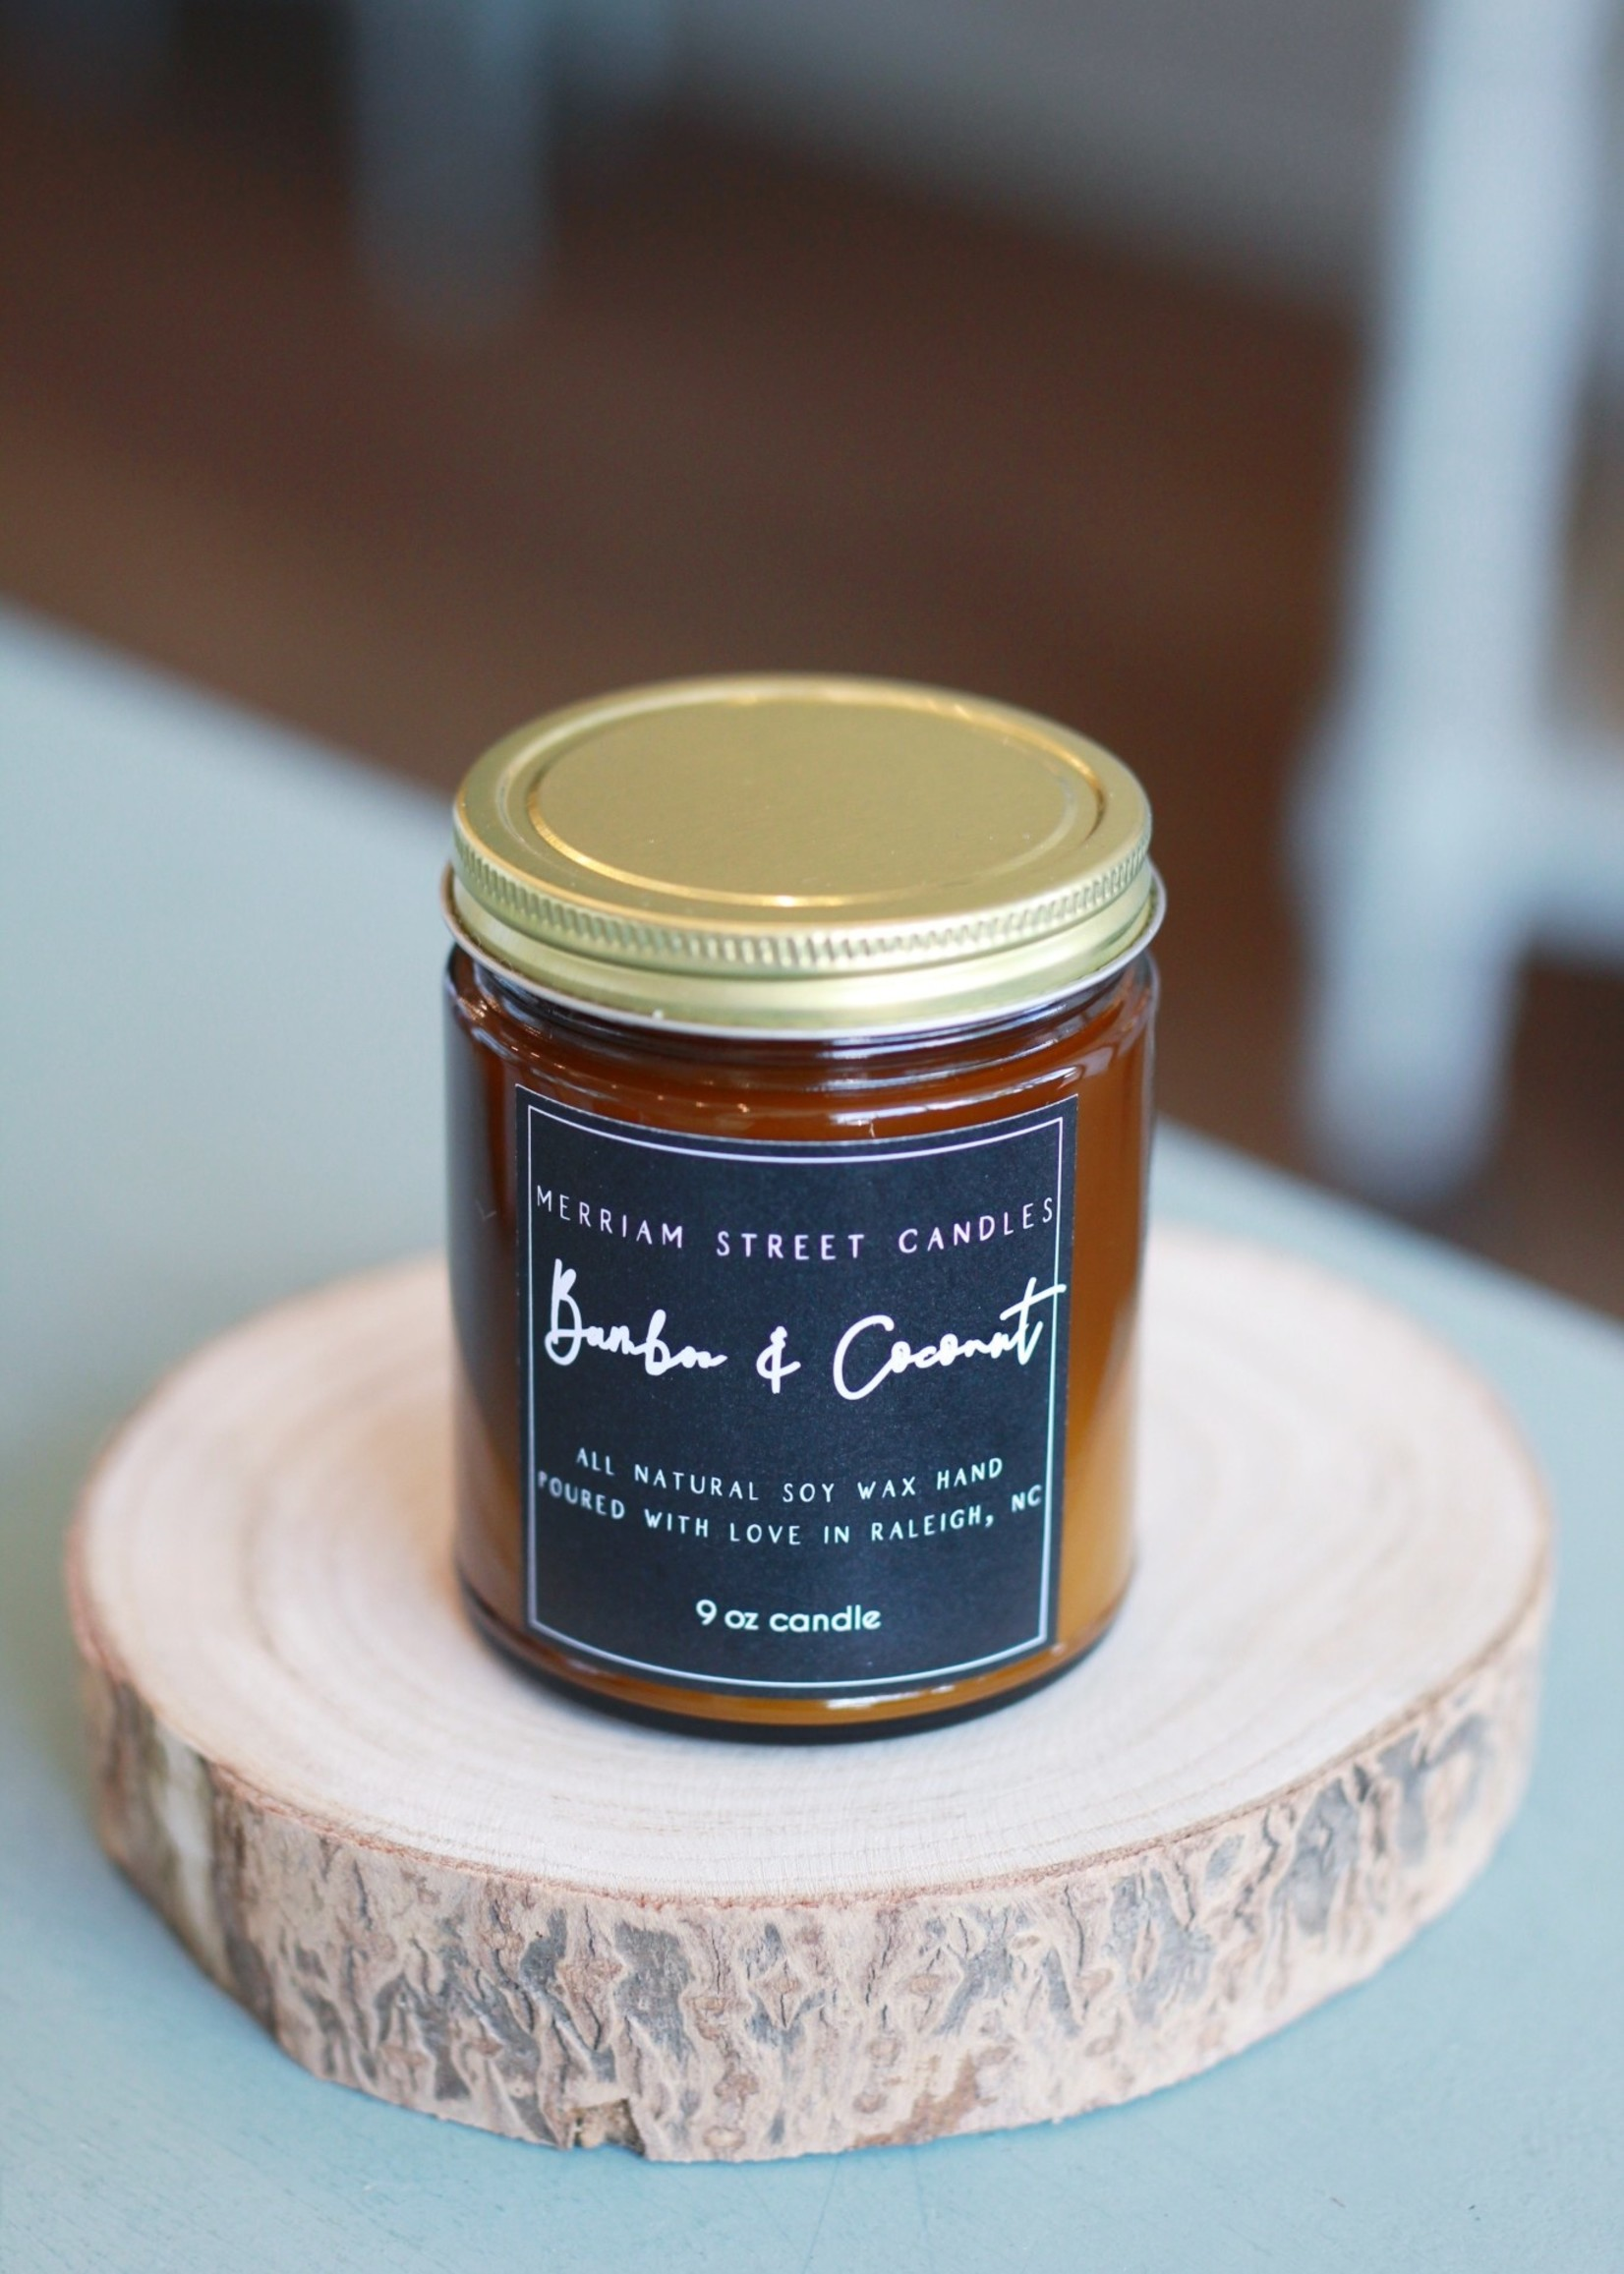 Merriam Street Candles Merriam Street Candles Bamboo and Coconut